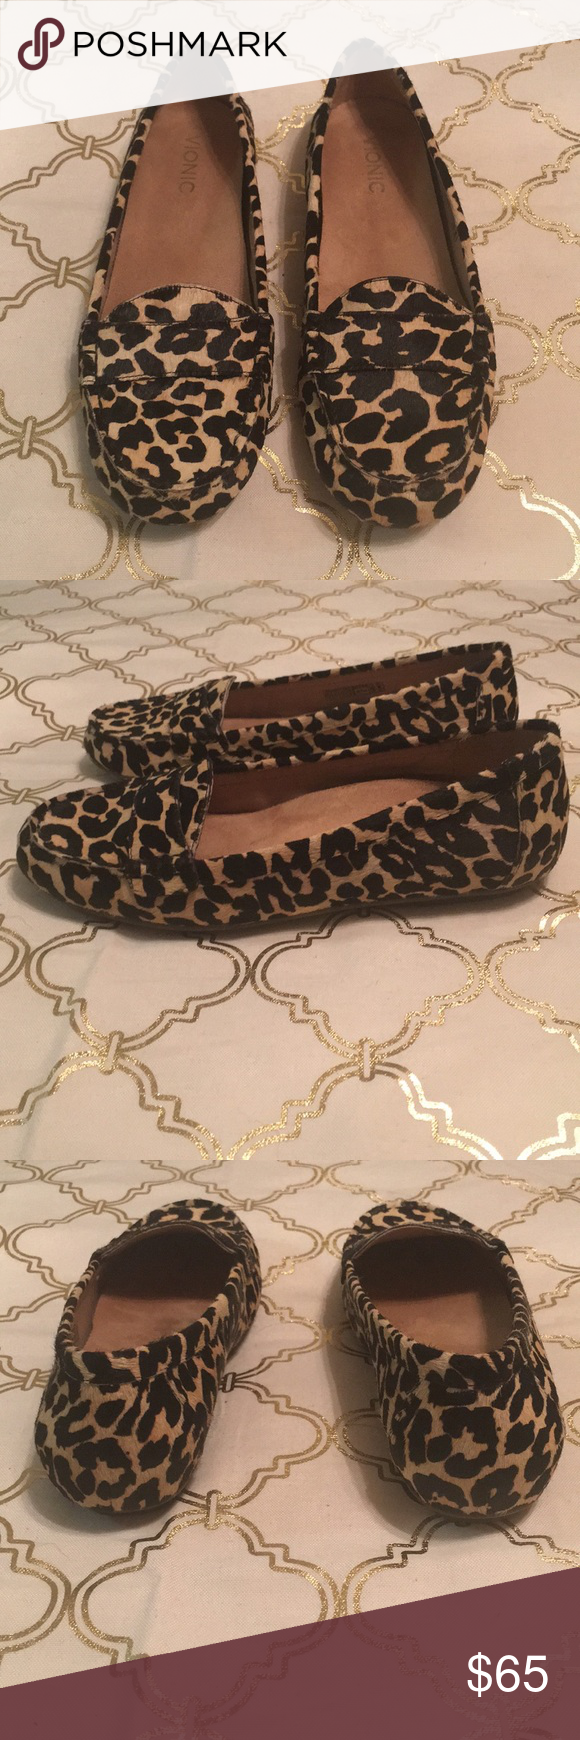 8a0525e87e0d Vionic leopard print calf hair loafers size 9 Brand new! Never worn! Vionic  flats. Incredibly comfortable cushioned insoles. Calf hair outers.